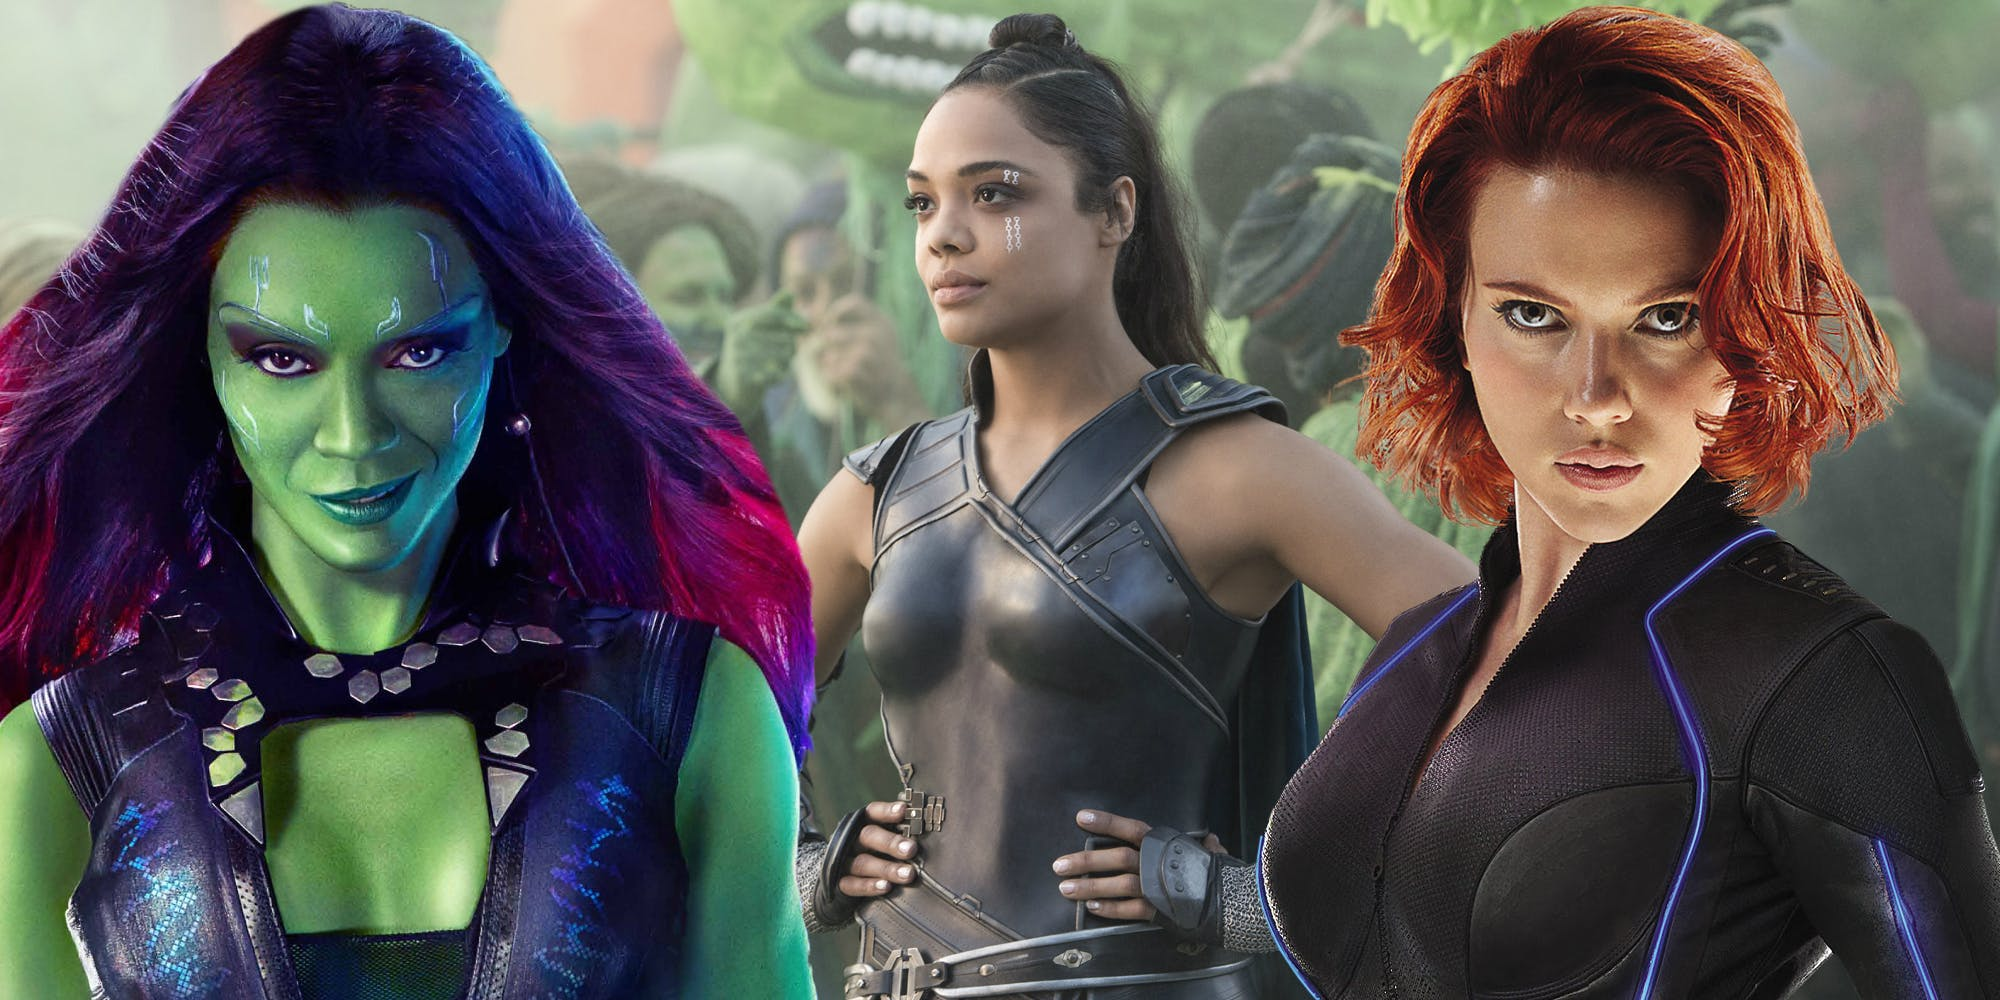 Avengers Endgame Director Explains Why They Did That All Female Team Up Scene